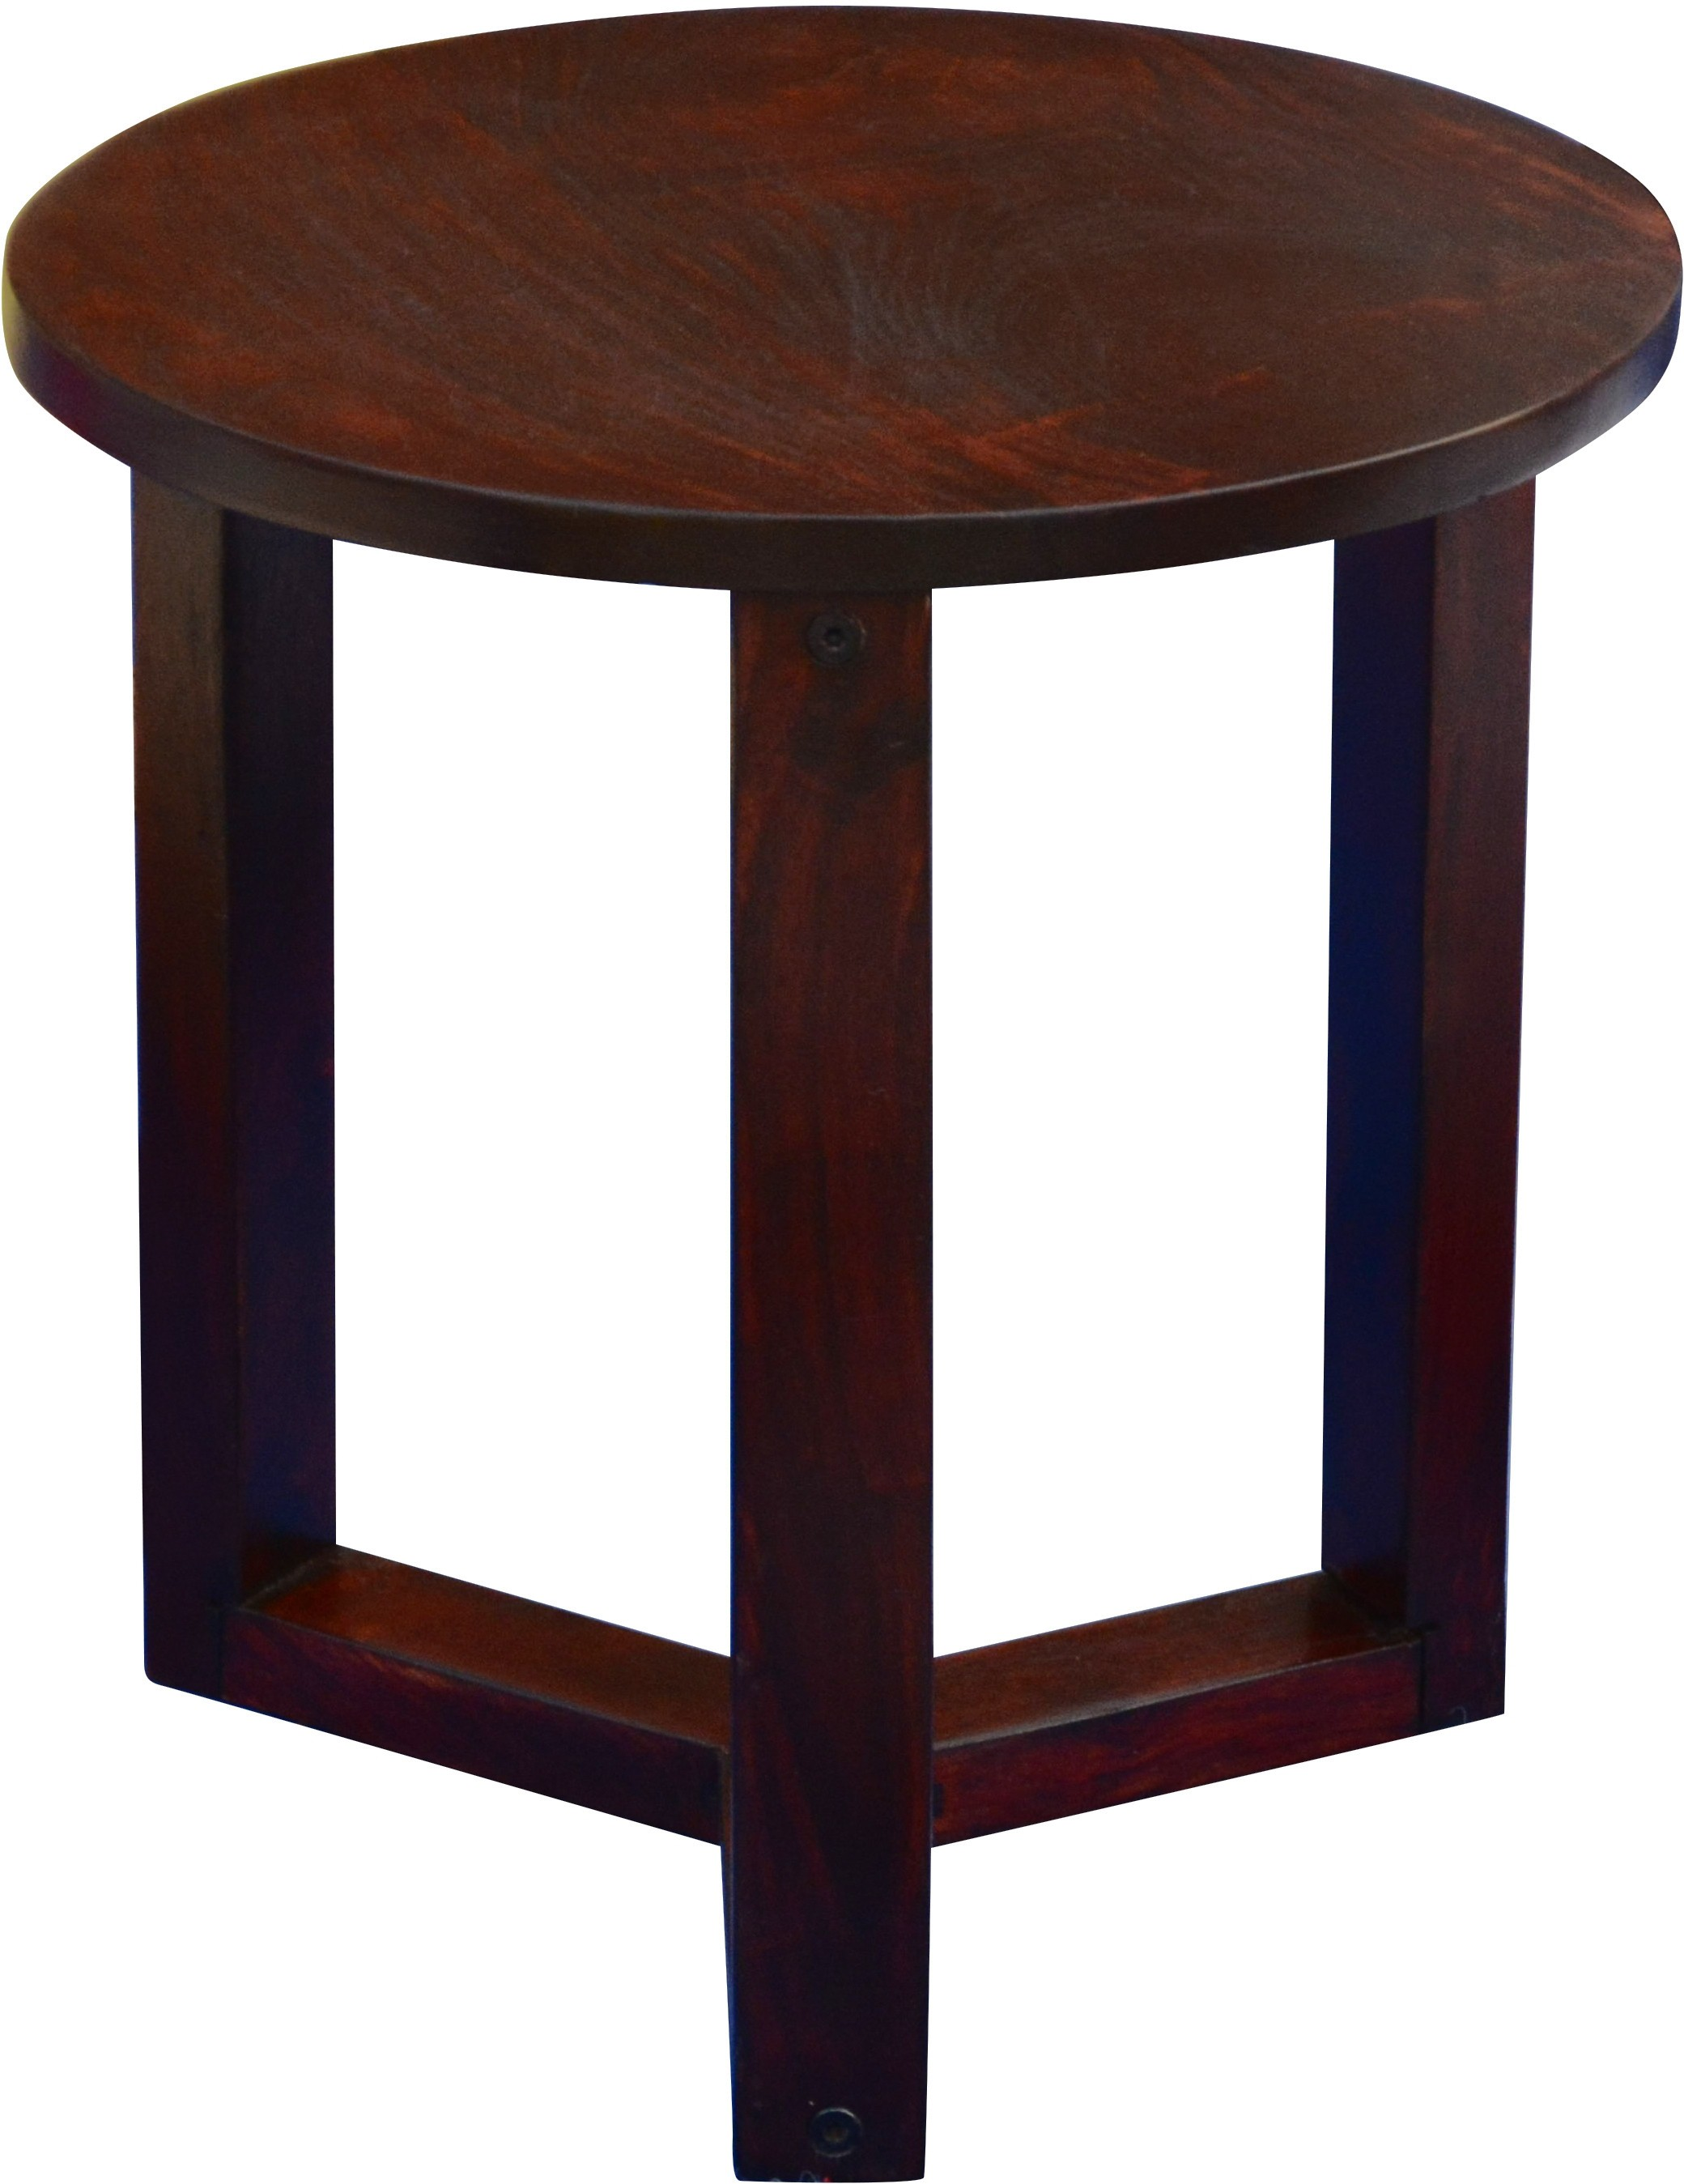 View Mubell Sheesham Luno Walnut Small Solid Wood Side Table(Finish Color - Walnut Brown) Furniture (Mubell)